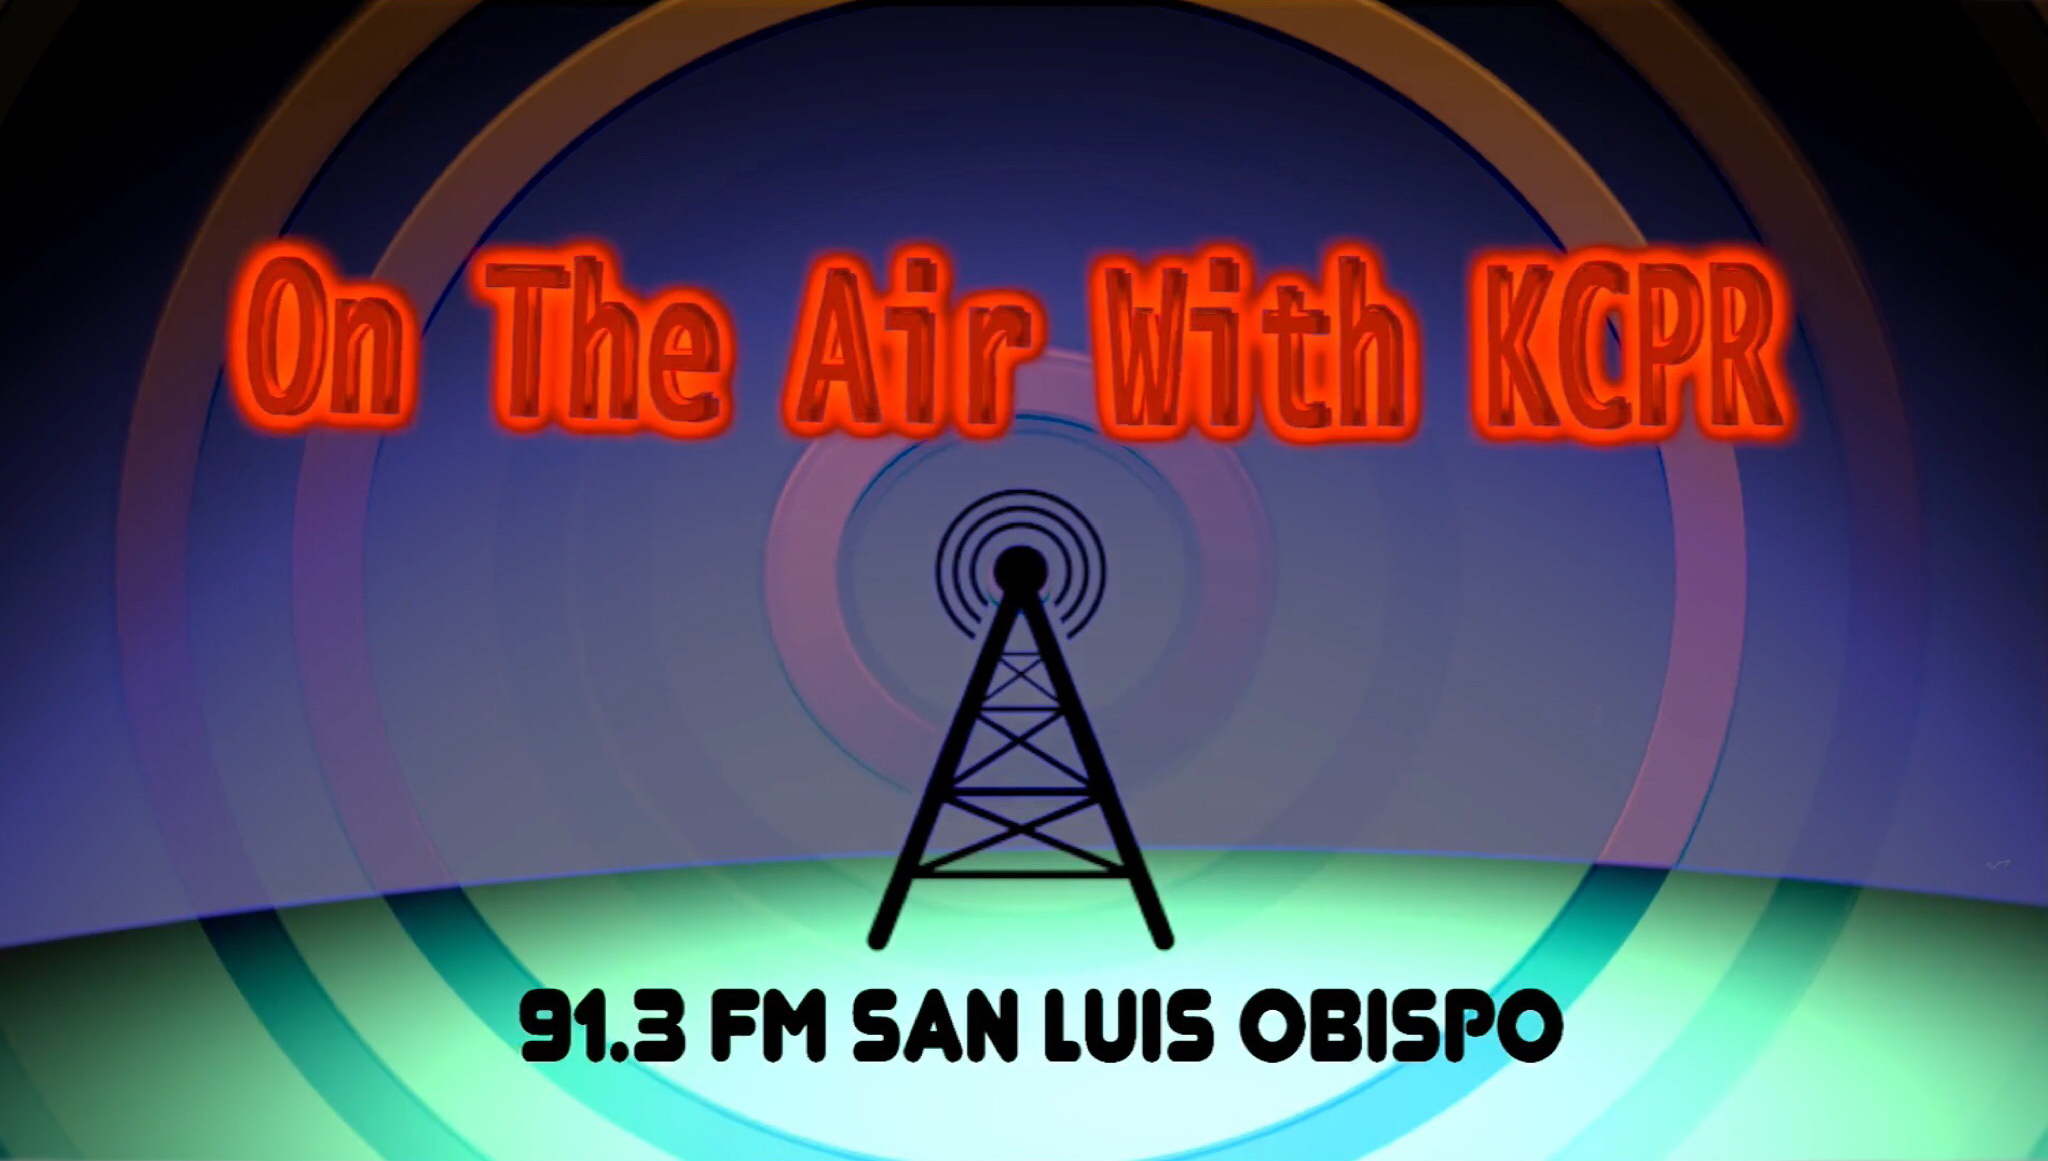 On the Air with KCPR